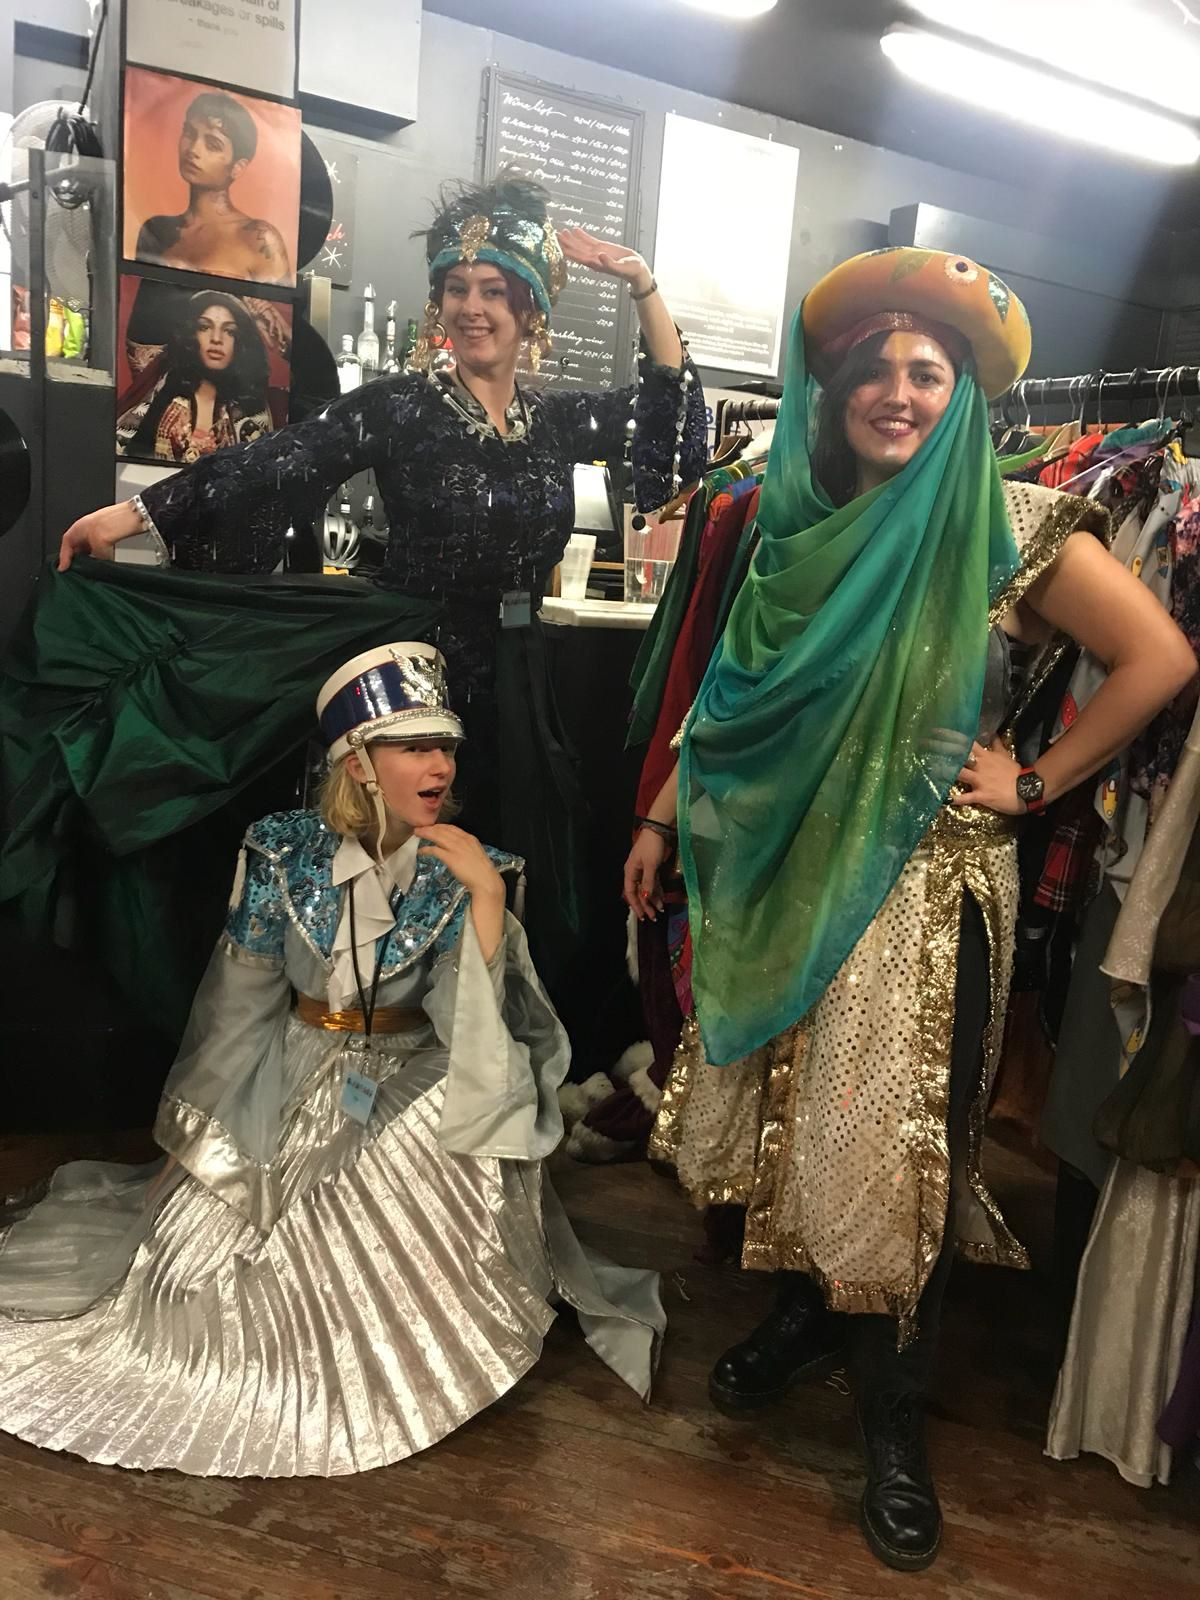 Sarah-Mary (left back), Anna and Claudia get ready to help families at our dress-up corner as part of International Women's Day celebrations at the Komedia arts centre.